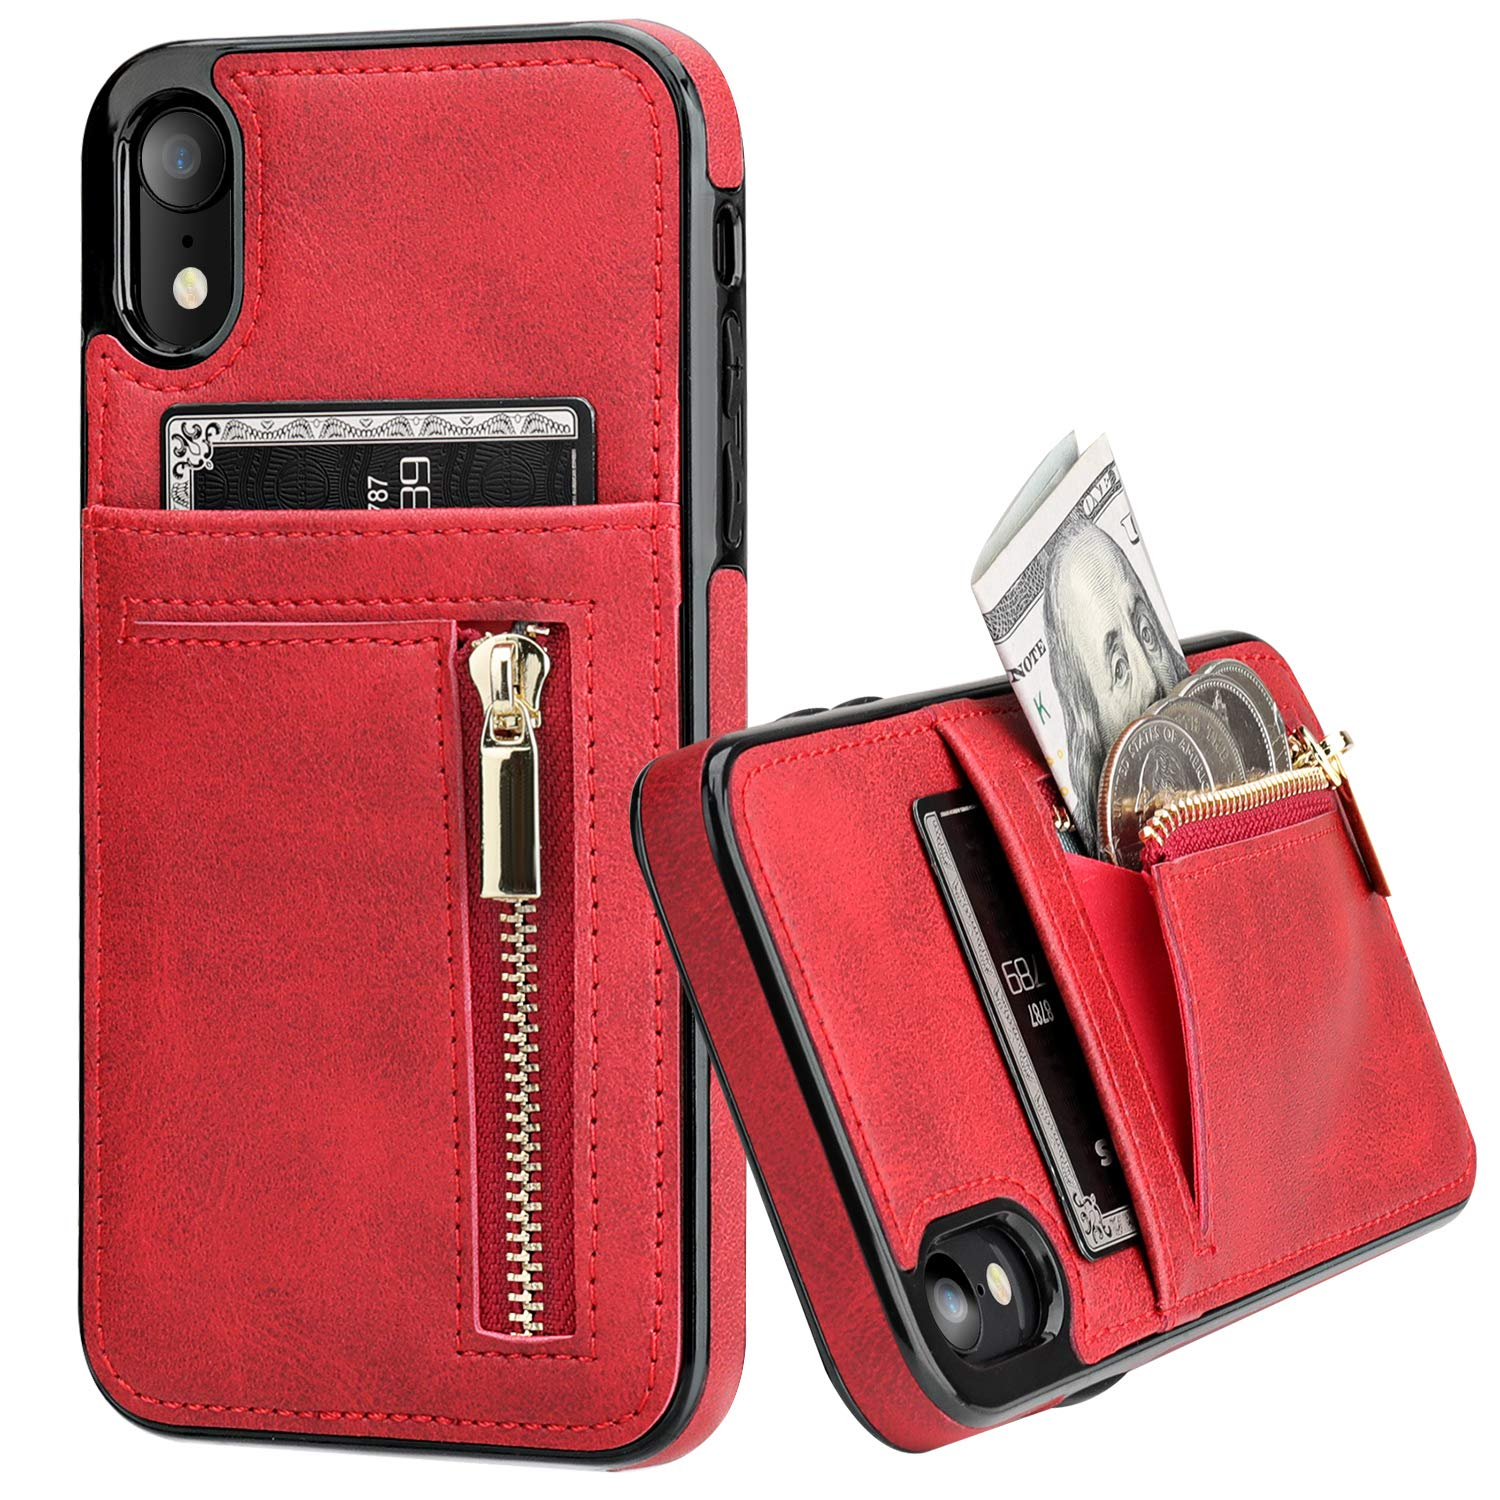 KIHUWEY iPhone Xr Case Wallet with Card Holder, iPhone Xr Case Slim Zipper Purse Wallet Case Leather Shockproof Protective Cover for iPhone Xr 6.1 Inch (Red)